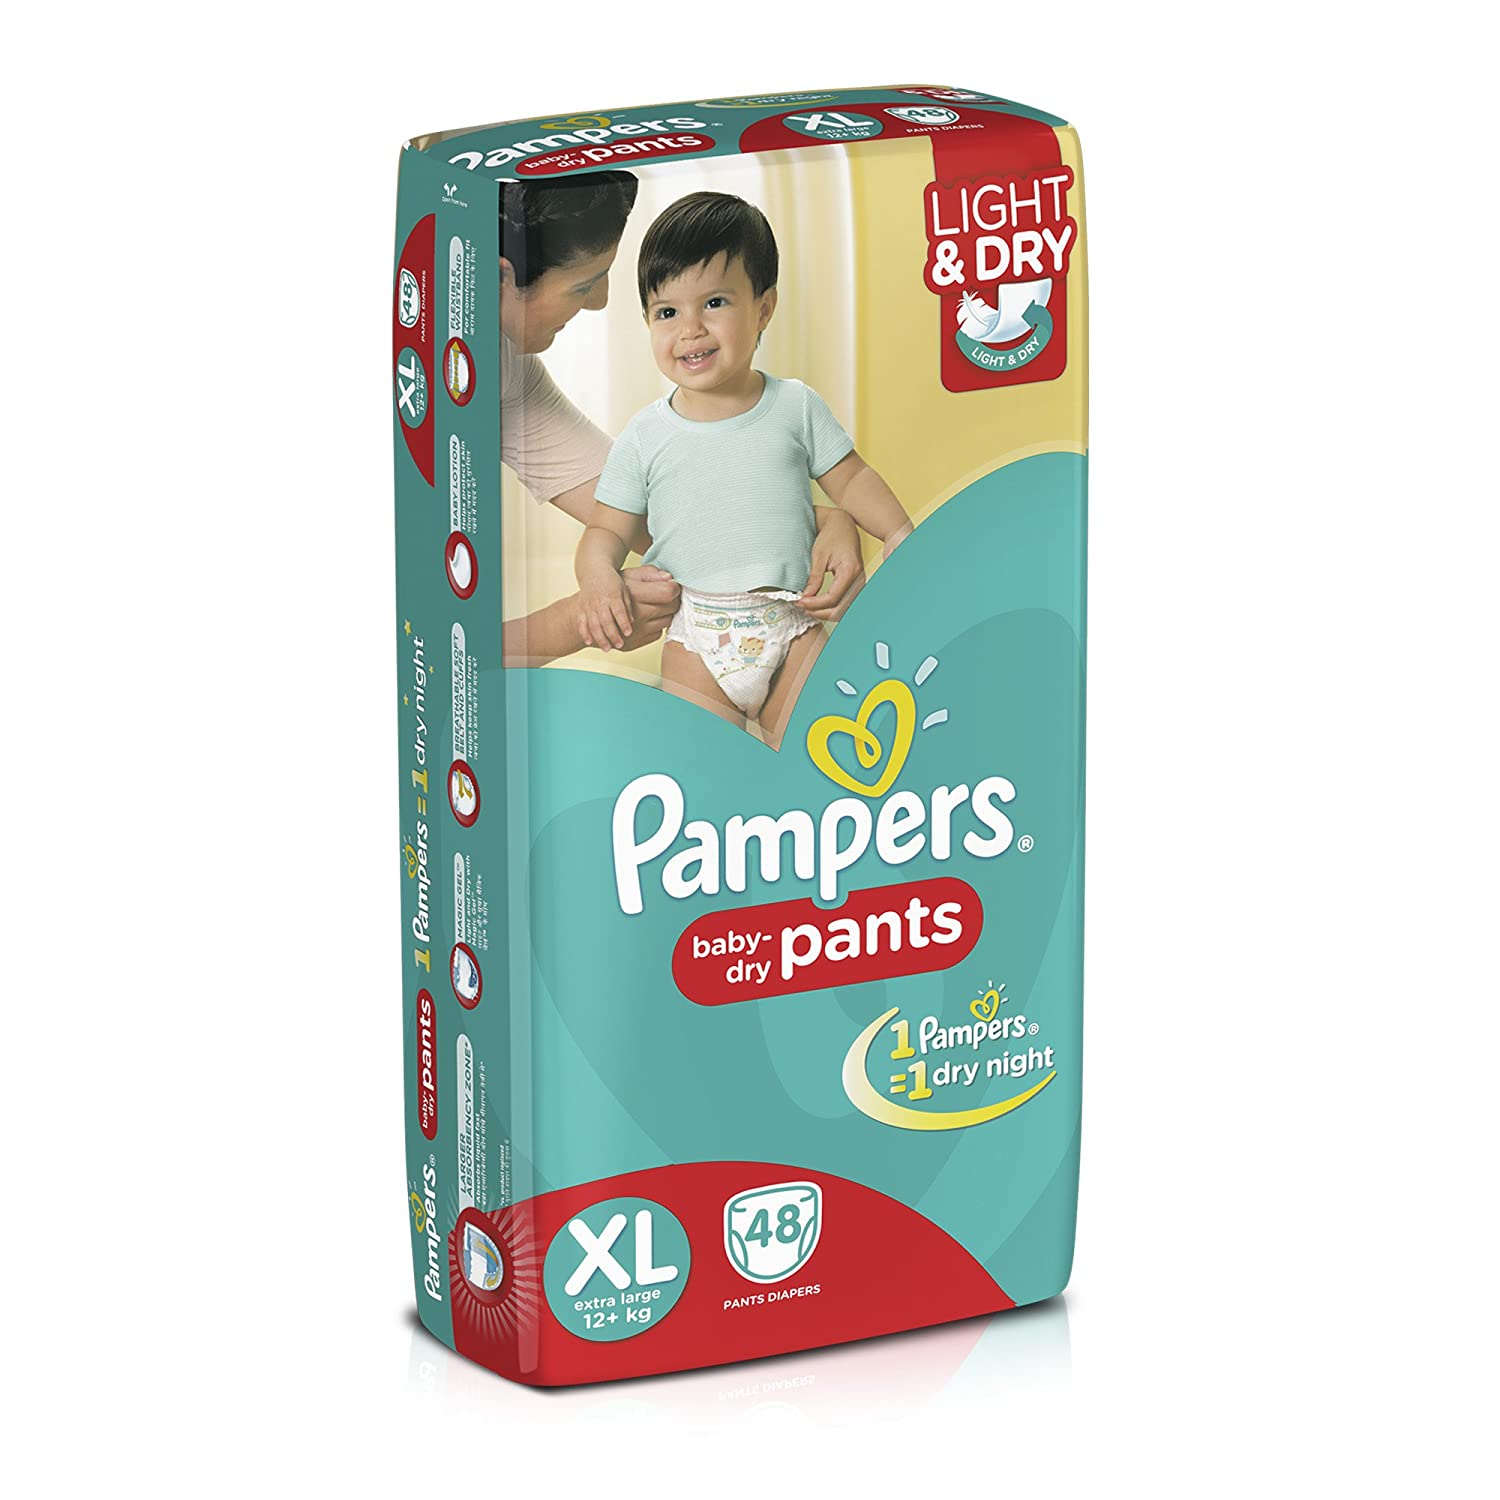 Pampers extra large size diaper pants 48 count amazon fandeluxe Image collections